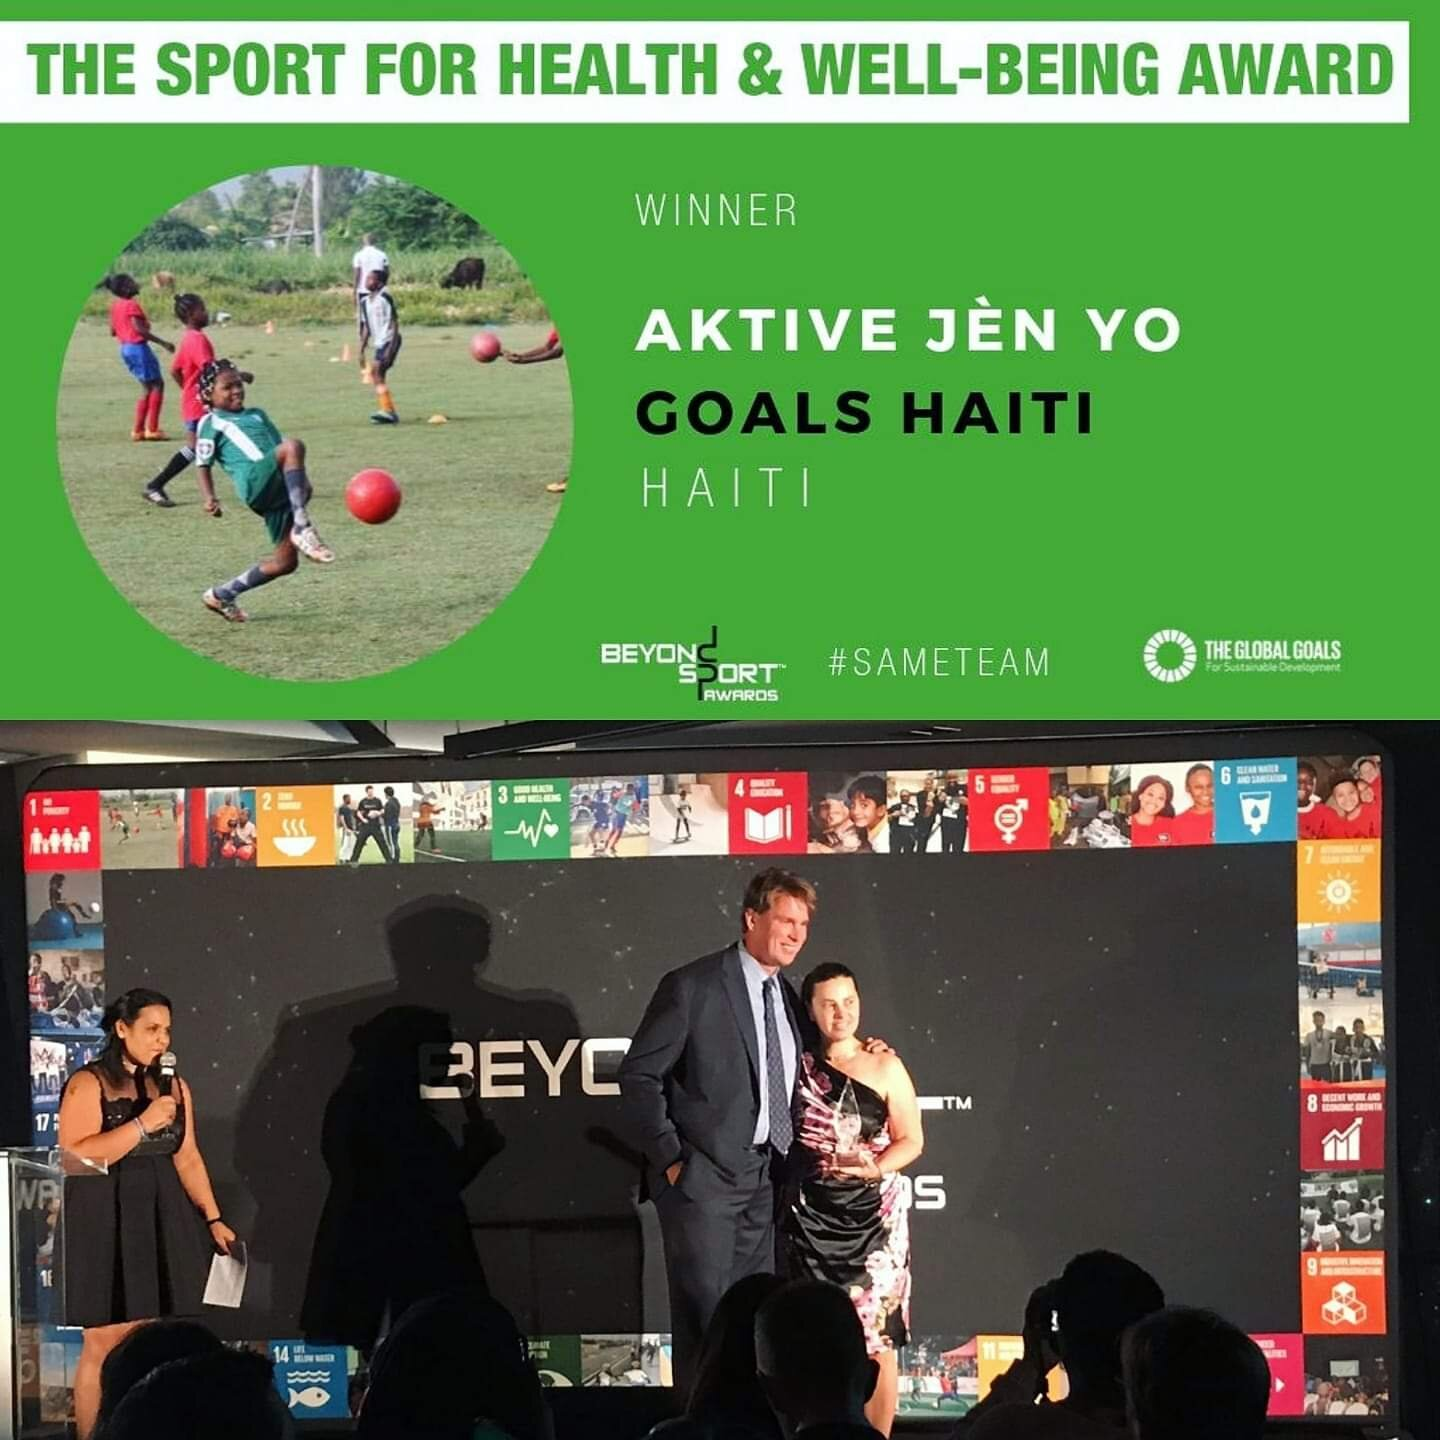 GOALS E.D. accepting the Beyond Sport Award on behalf of GOALS Haiti